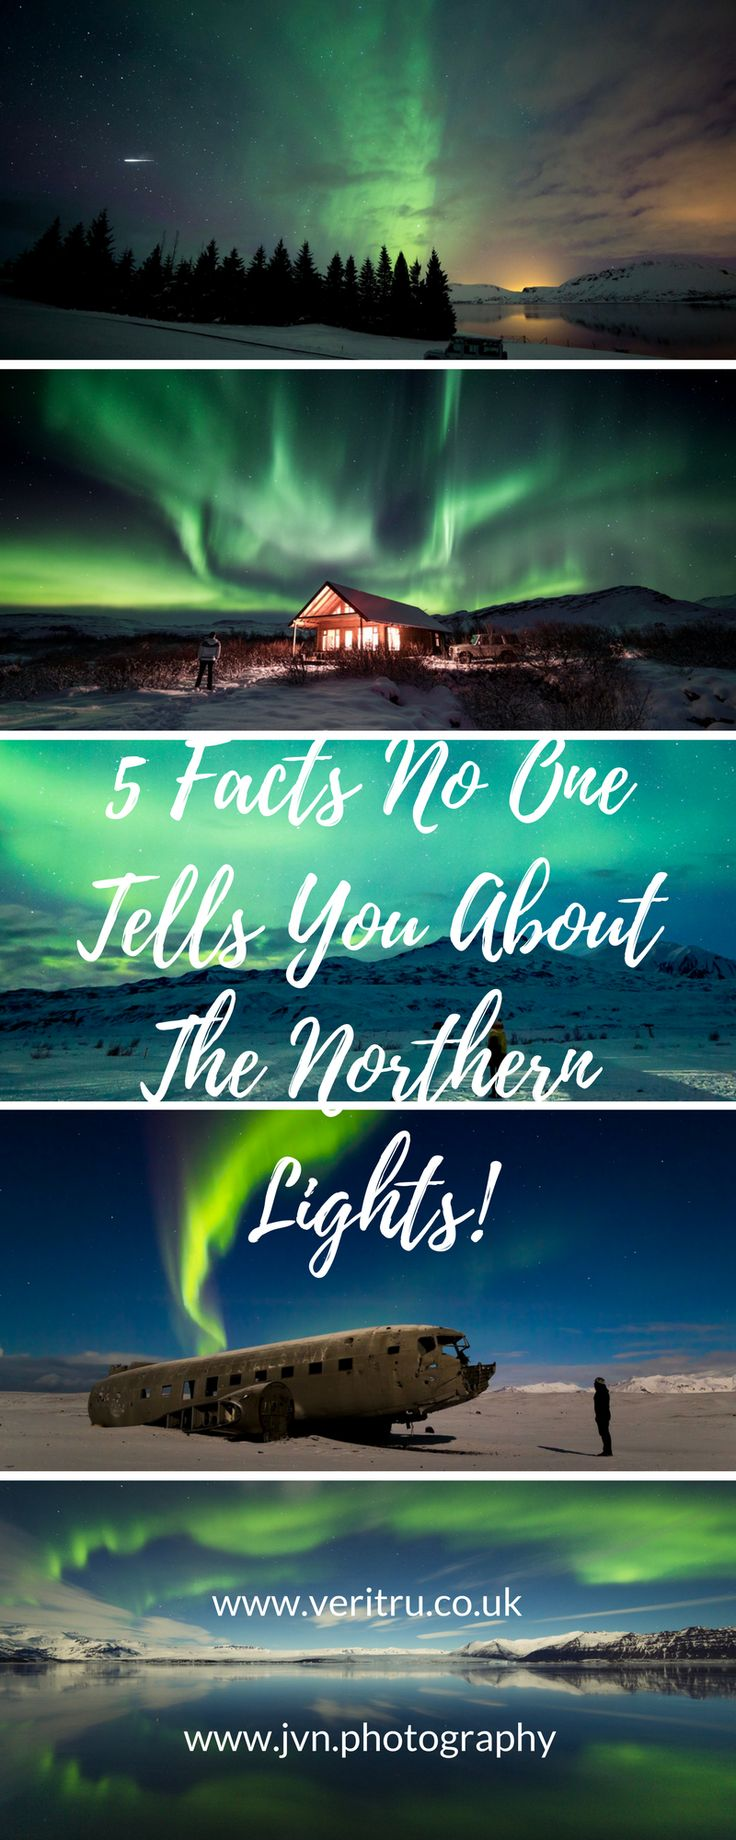 5 Facts No One Tells You About The Northern Lights5 Facts No One Tells You About The Northern Lights. You'll find the Northern Lights in the northern parts Canada, Norway, Finland, Sweden, Iceland, Greenland, Scotland and Russia.